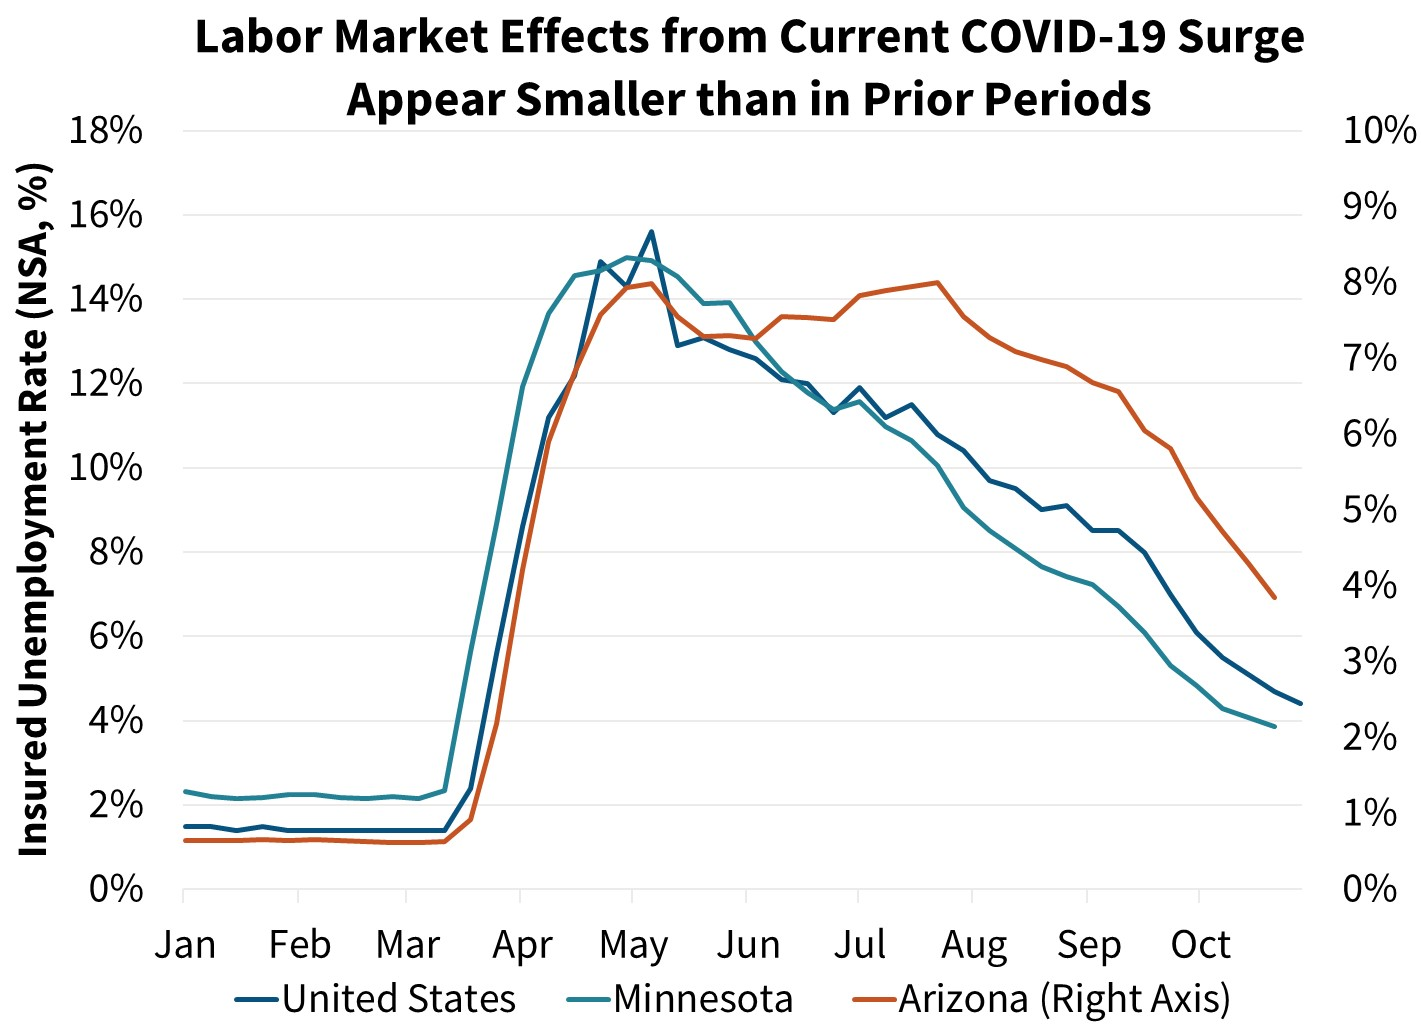 Labor Market Effects form Current COVID-19 Surge Appear Smaller than in Prior Periods